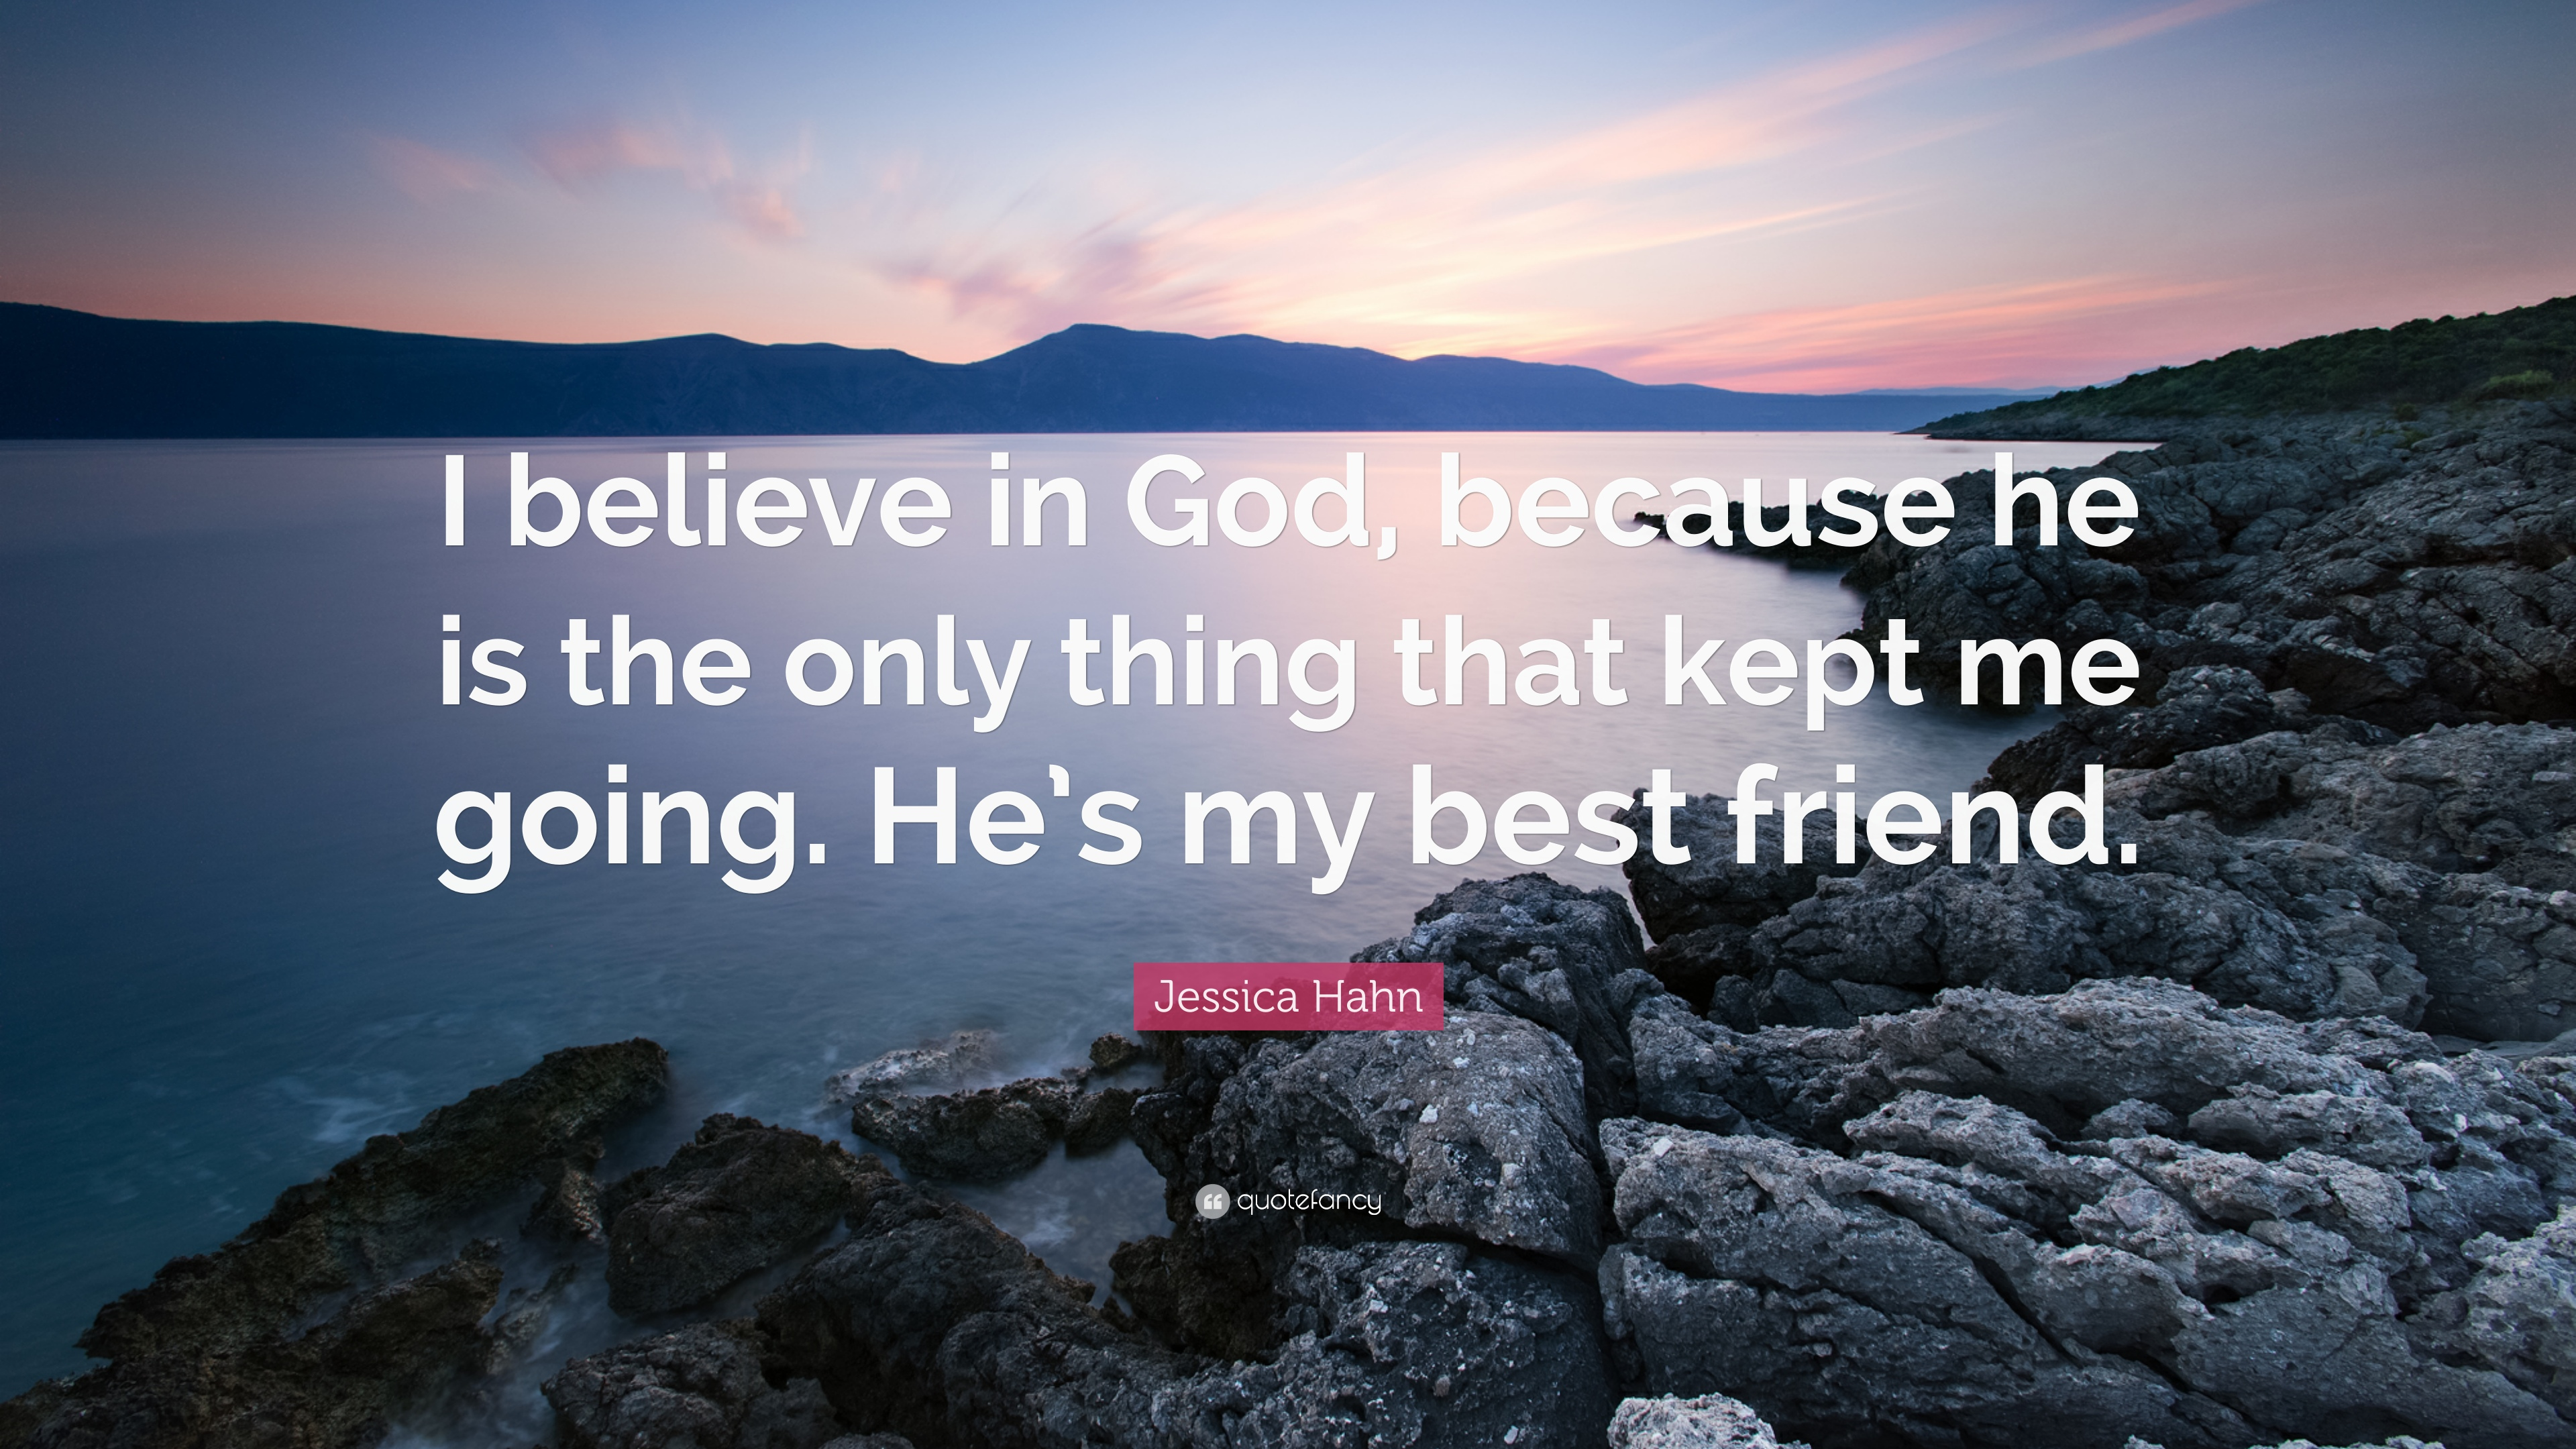 I believe in God, because he is the only thing that kept me going. He's my best friend.